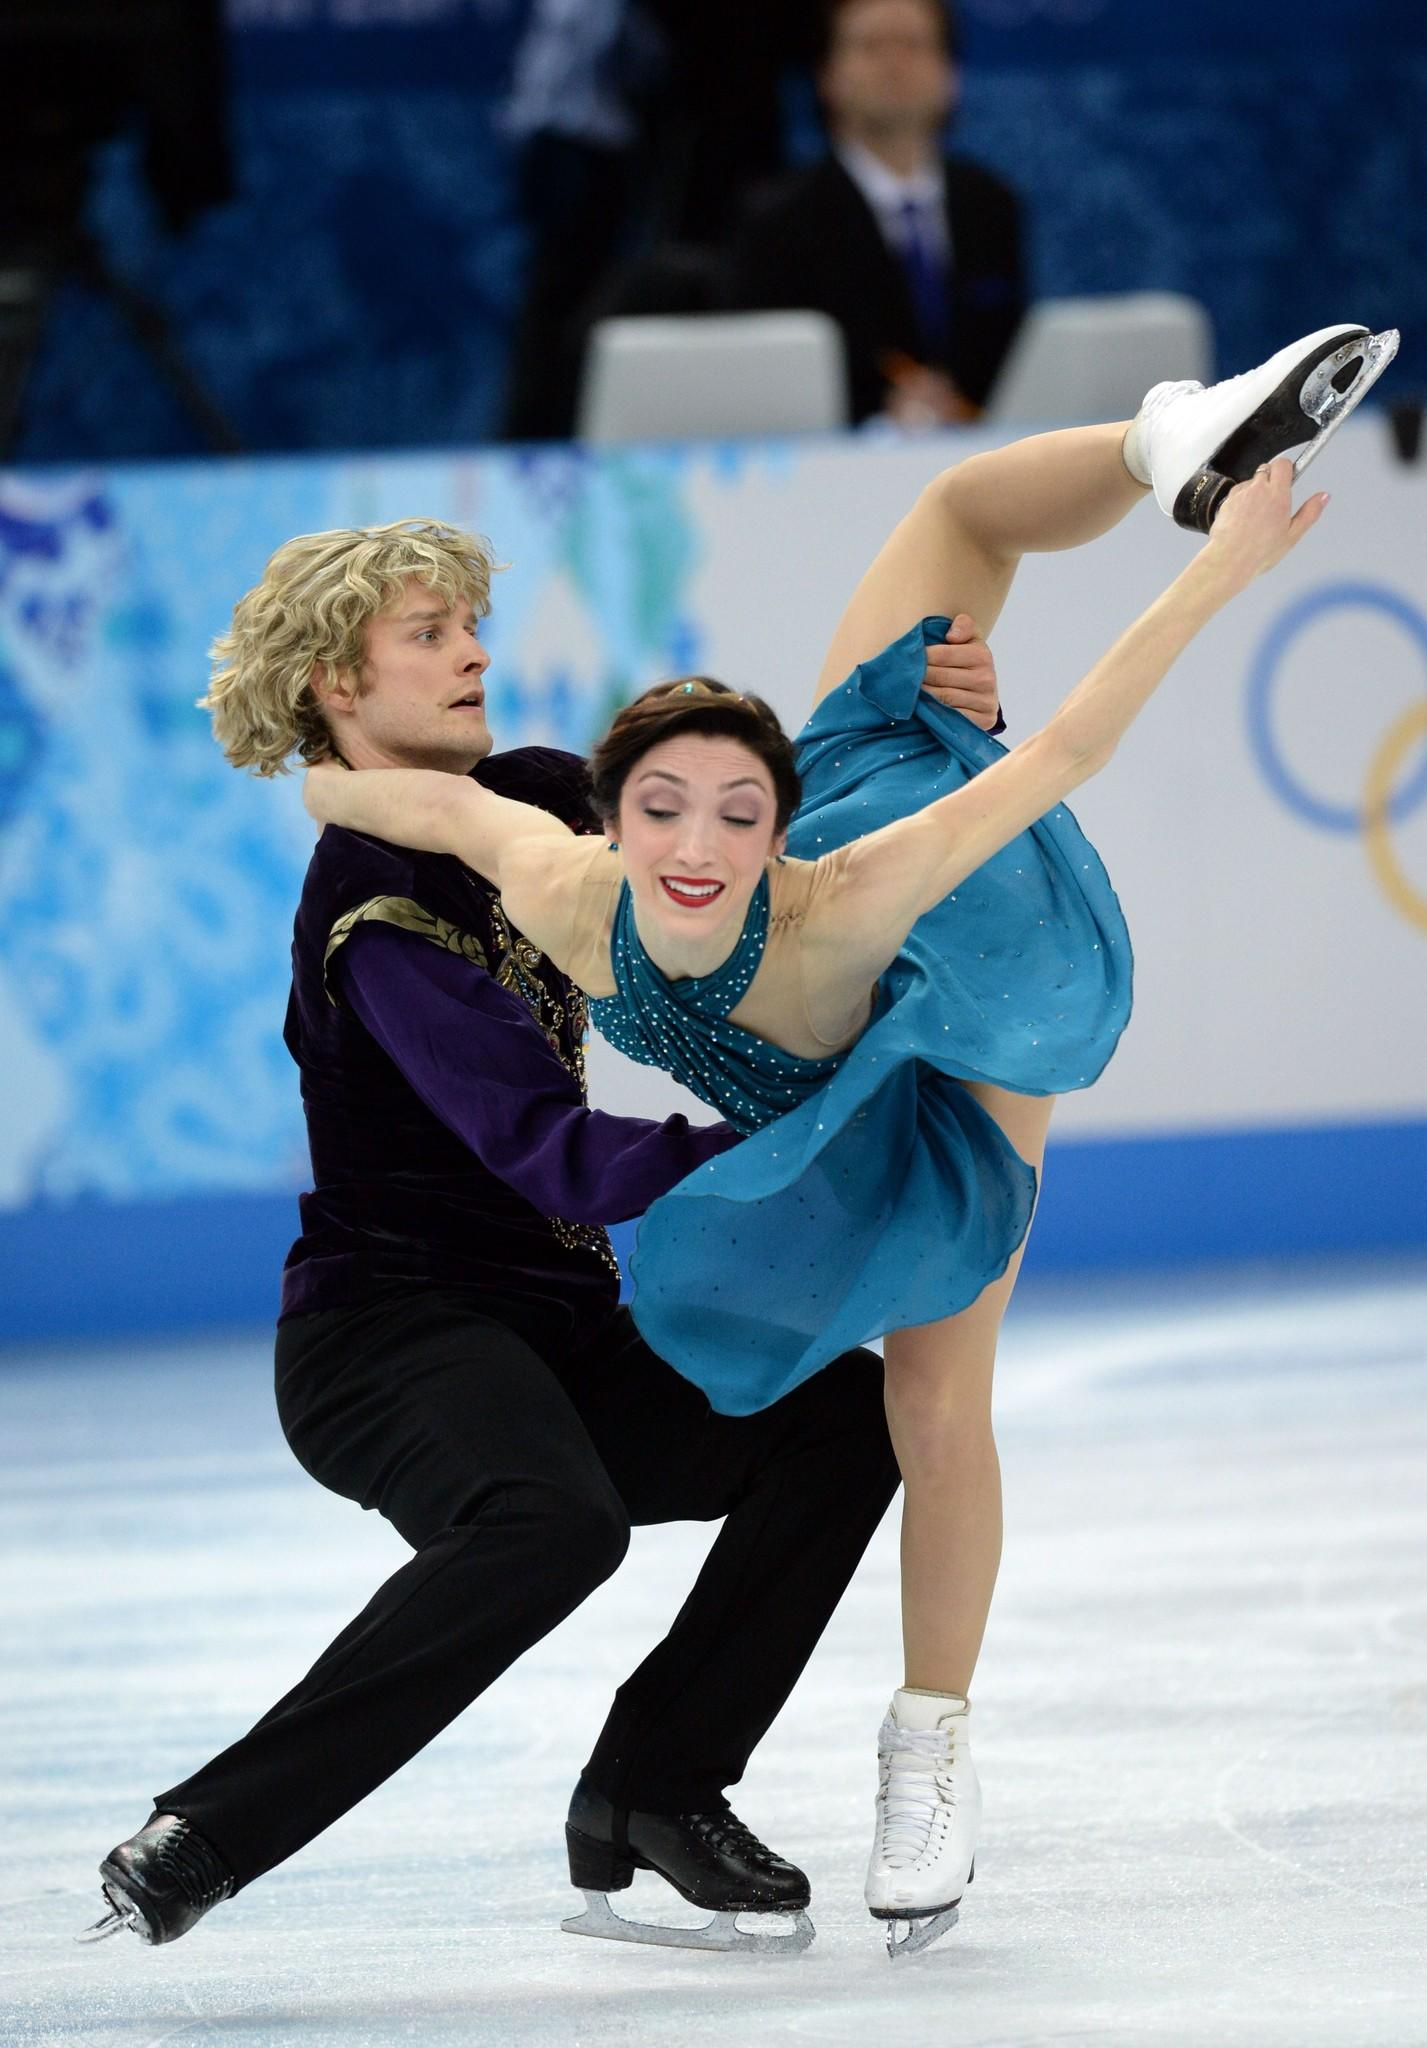 If you love ice dancing, there's a good chance you have a fear of heights and specialize in dramatic flips of the hair.